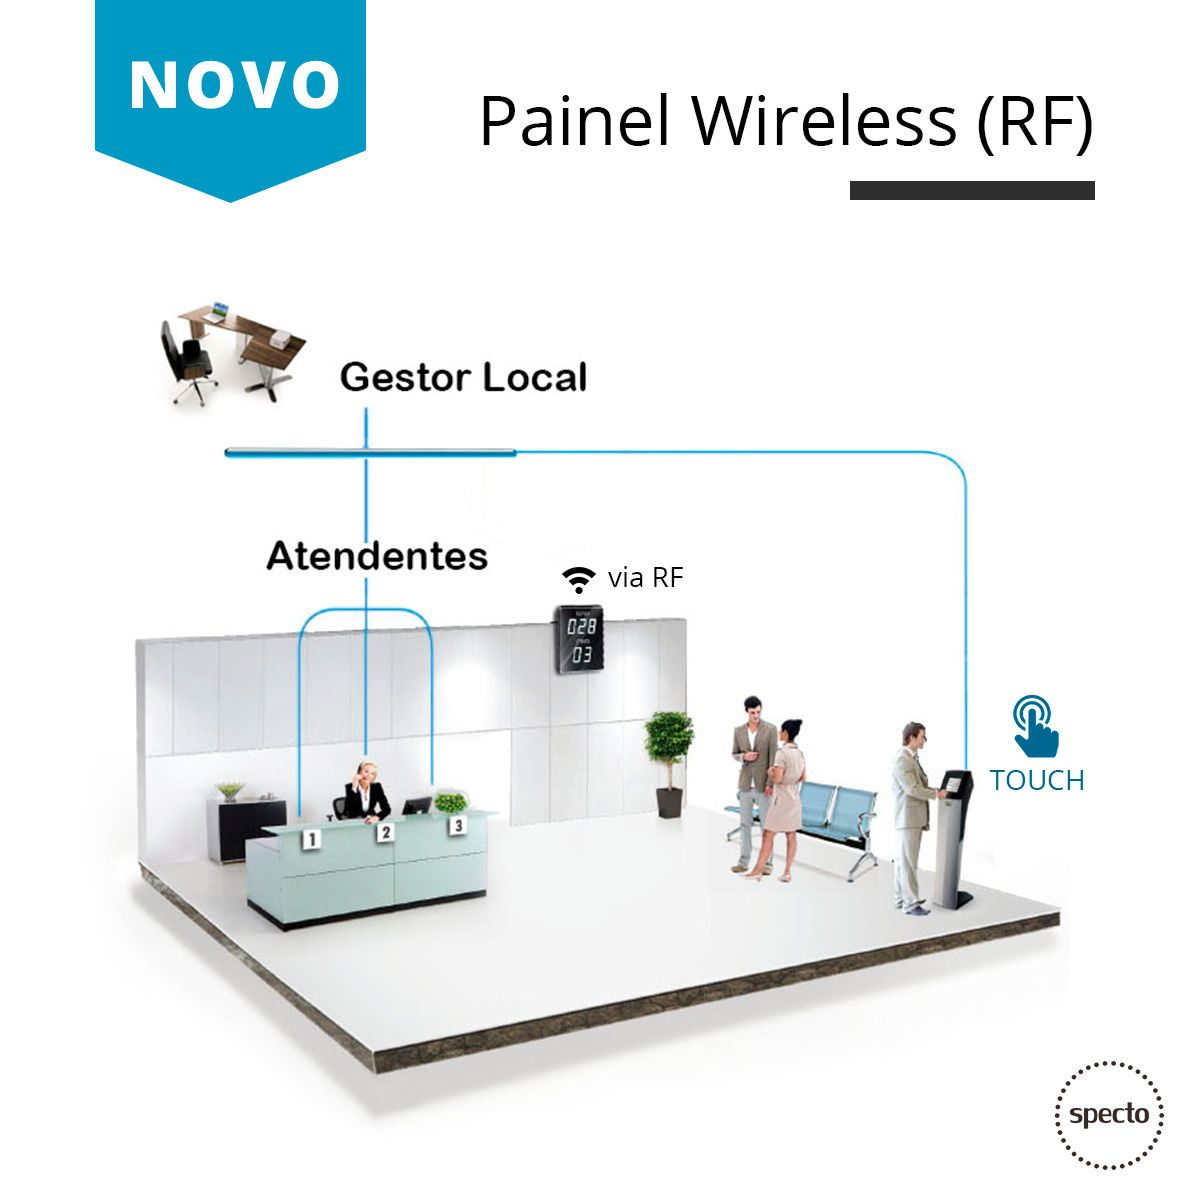 QUALPROX® UNITY Led Wireless com TES Touch  -  Specto Tecnologia